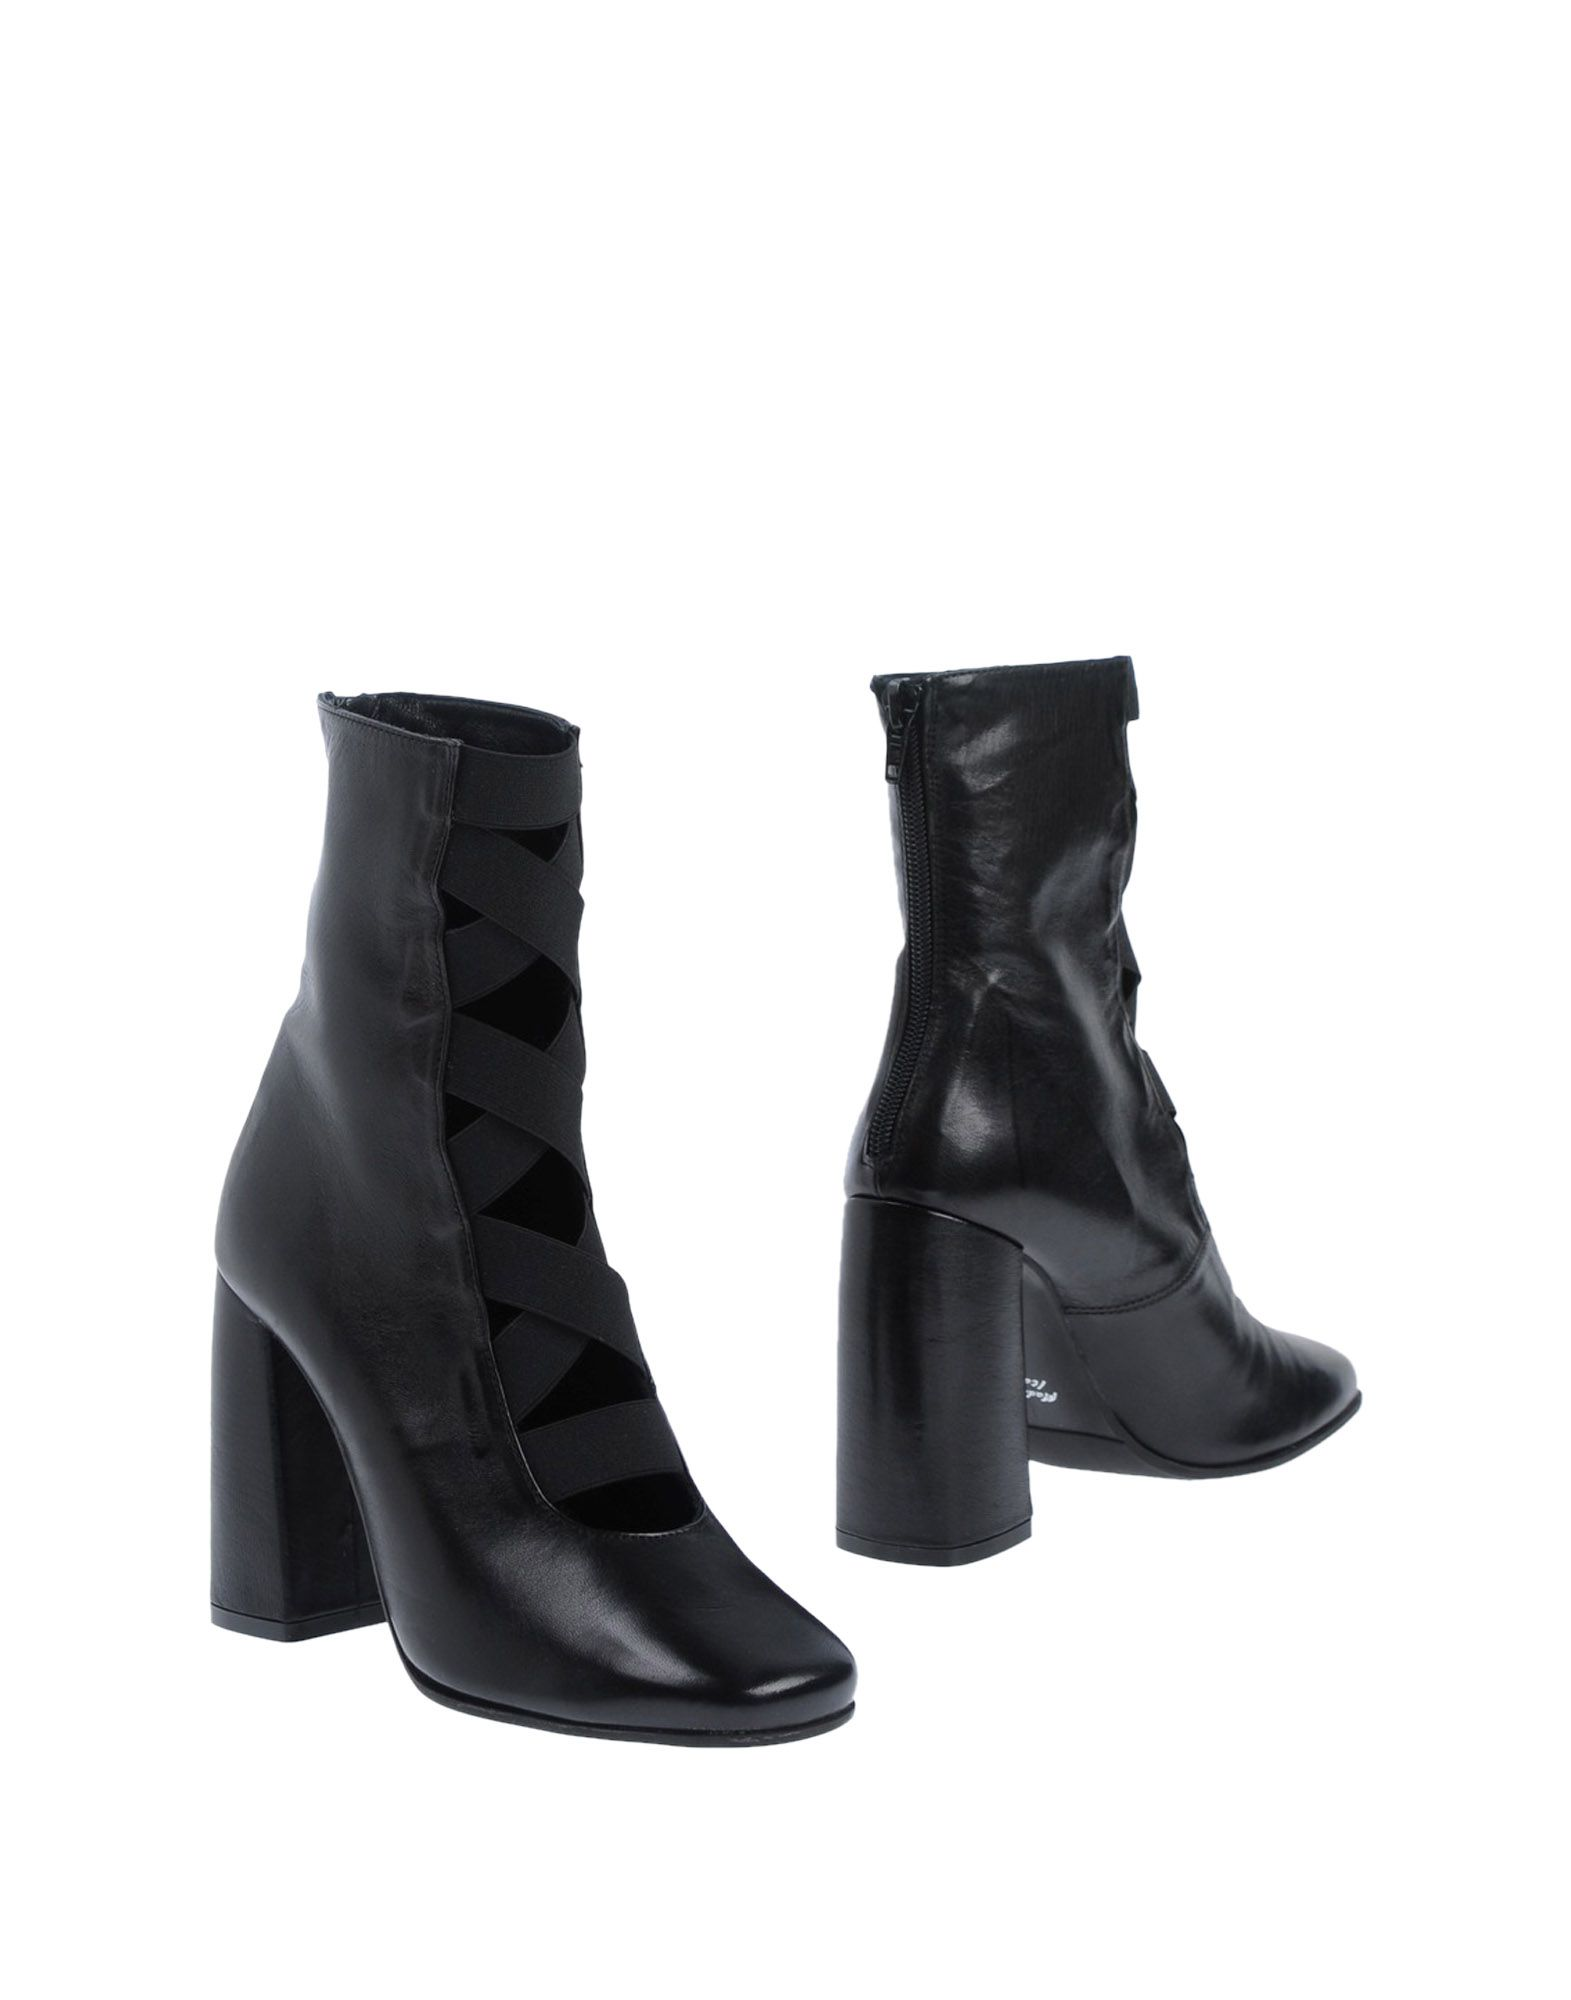 Mauro Fedeli Ankle Boot - Women Mauro Fedeli Ankle Boots - online on  Canada - Boots 11507680GW 6cdfad